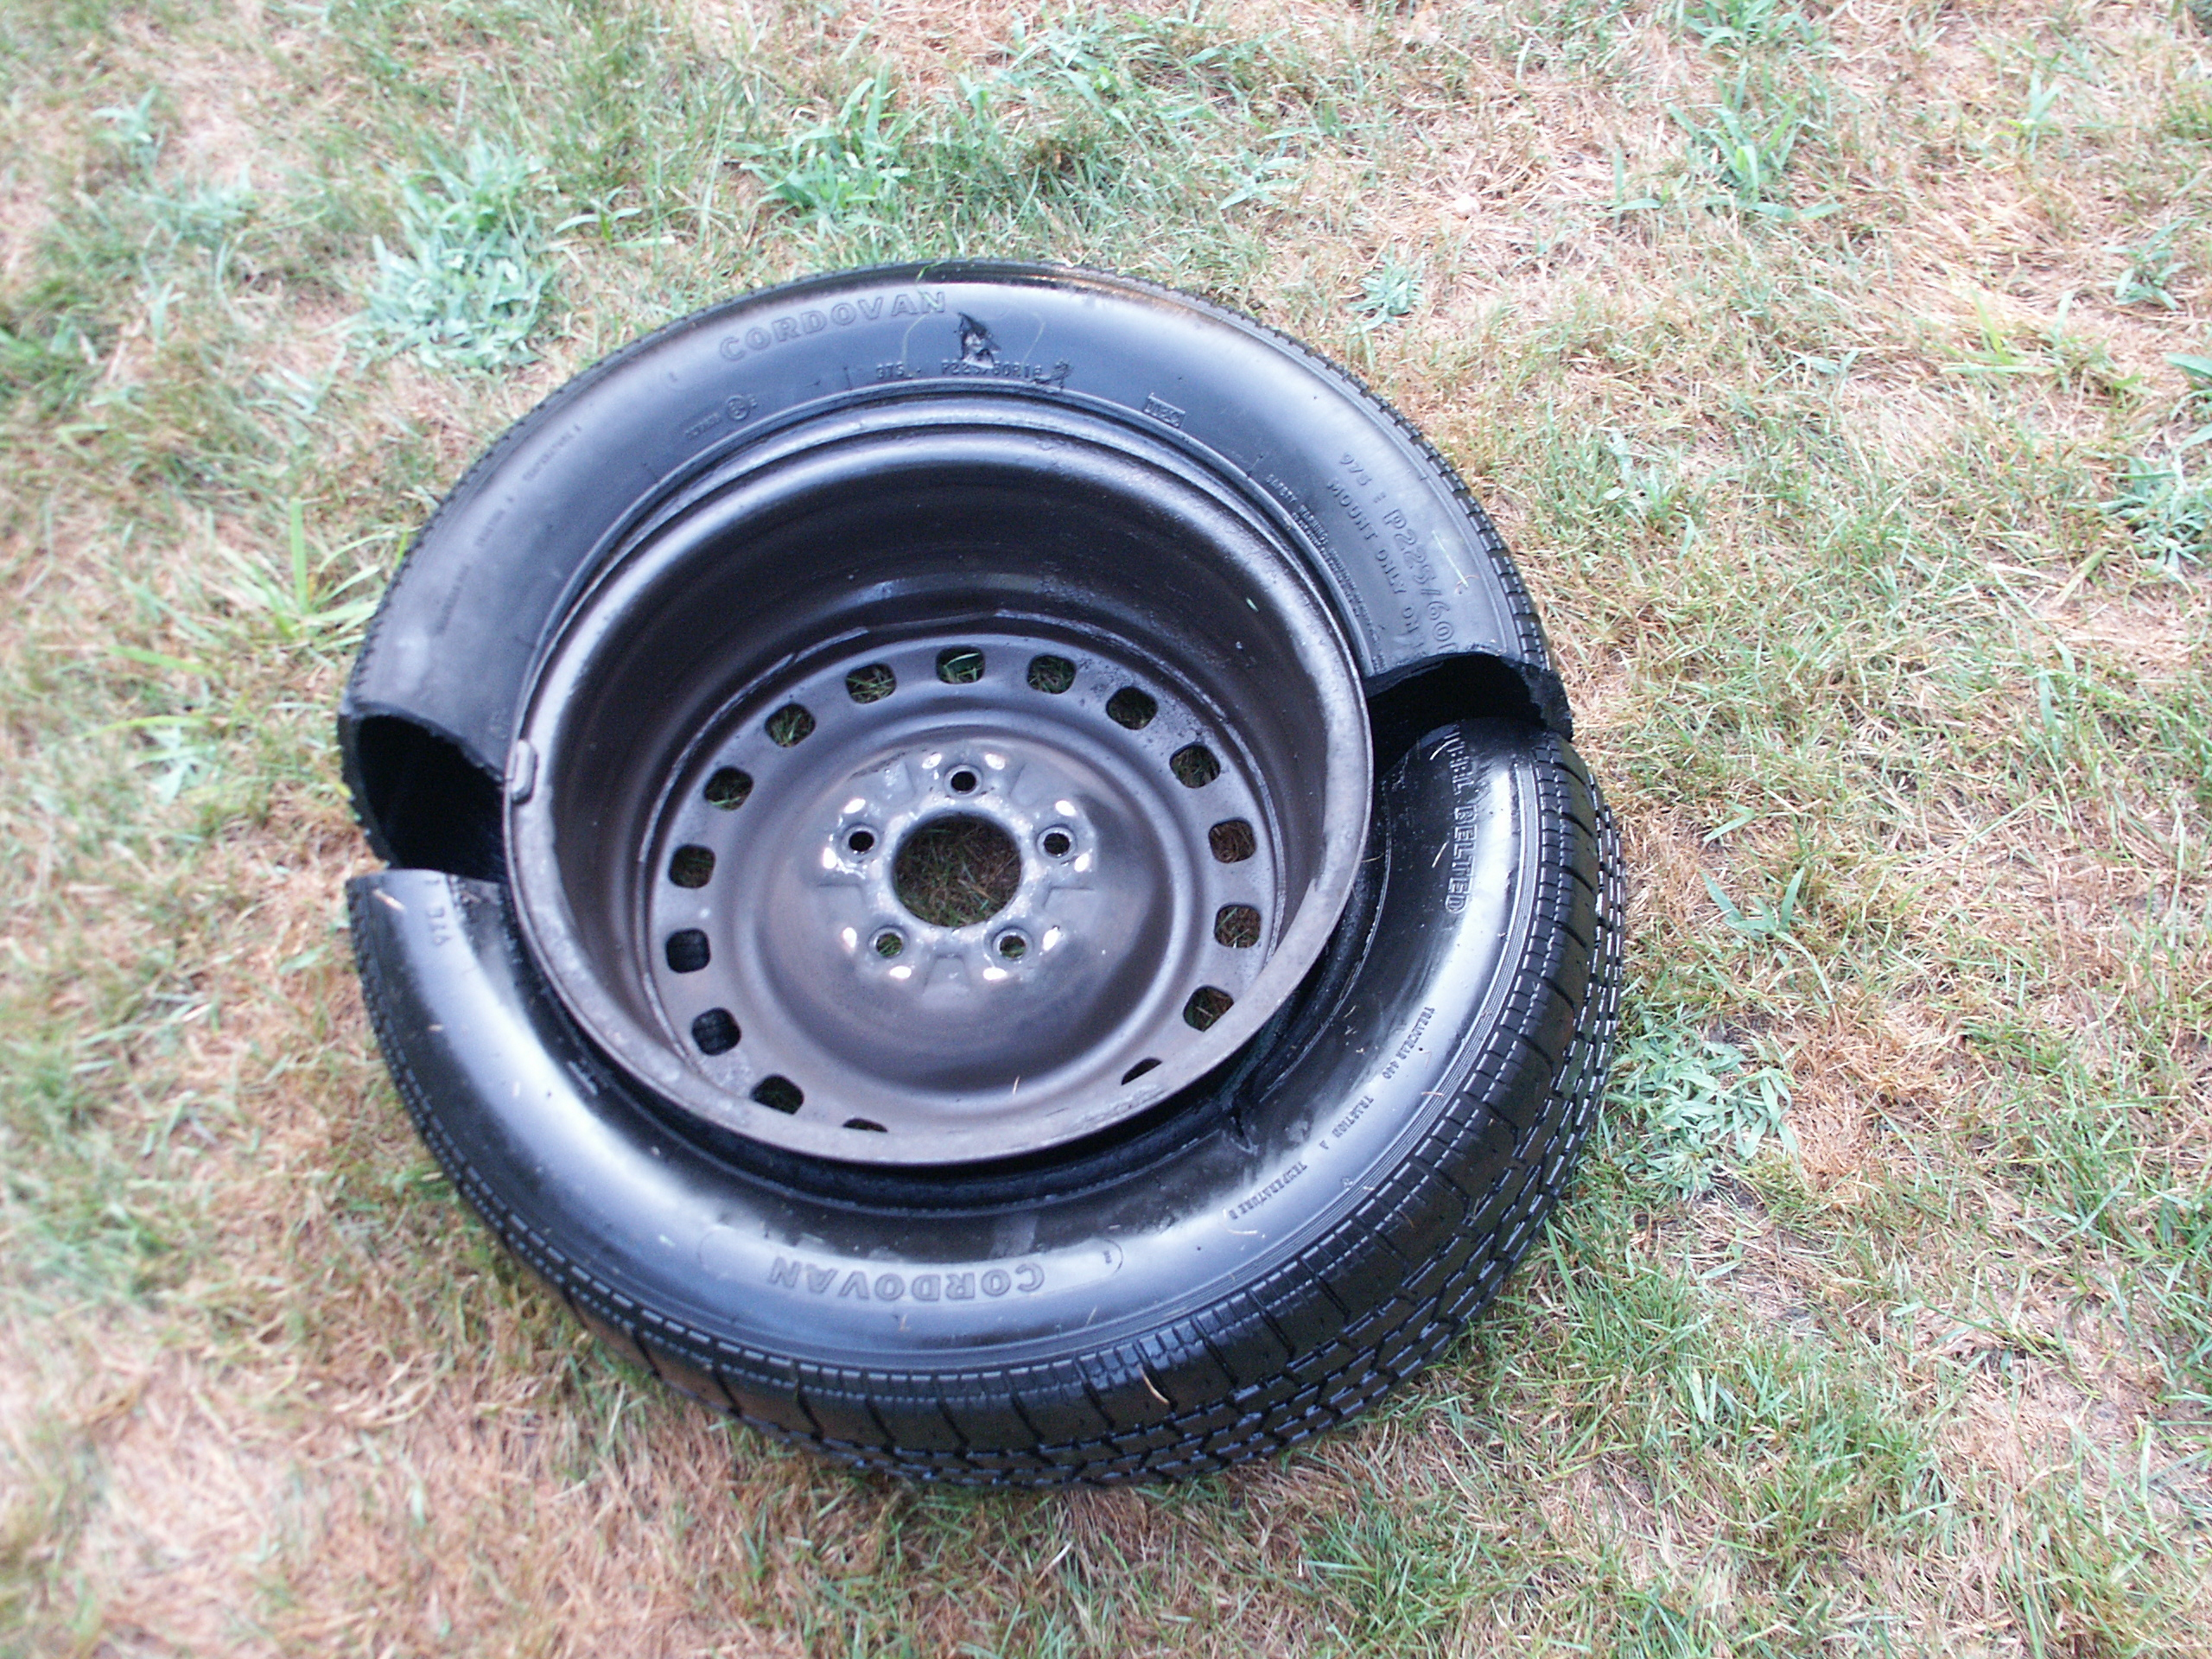 cutting apart a steel belted radial car tire